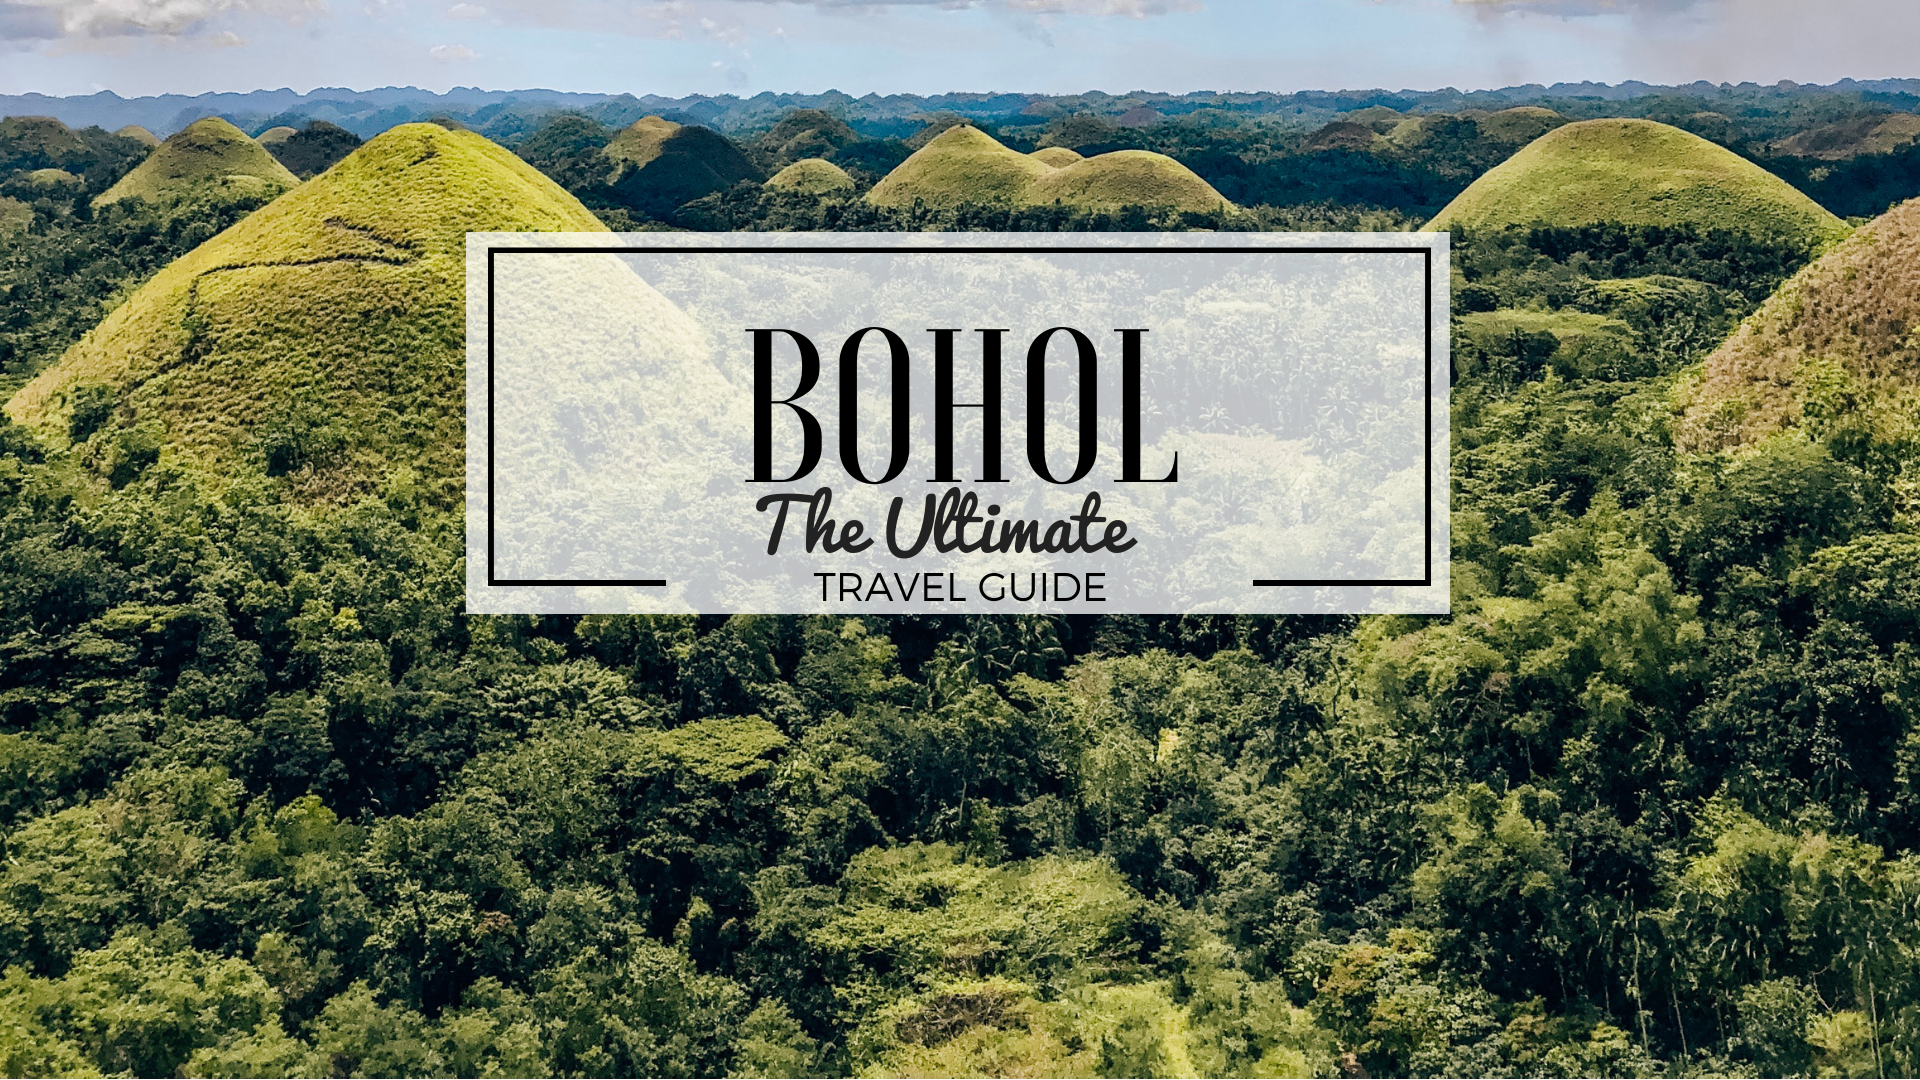 Bohol Ultimate Travel Guide